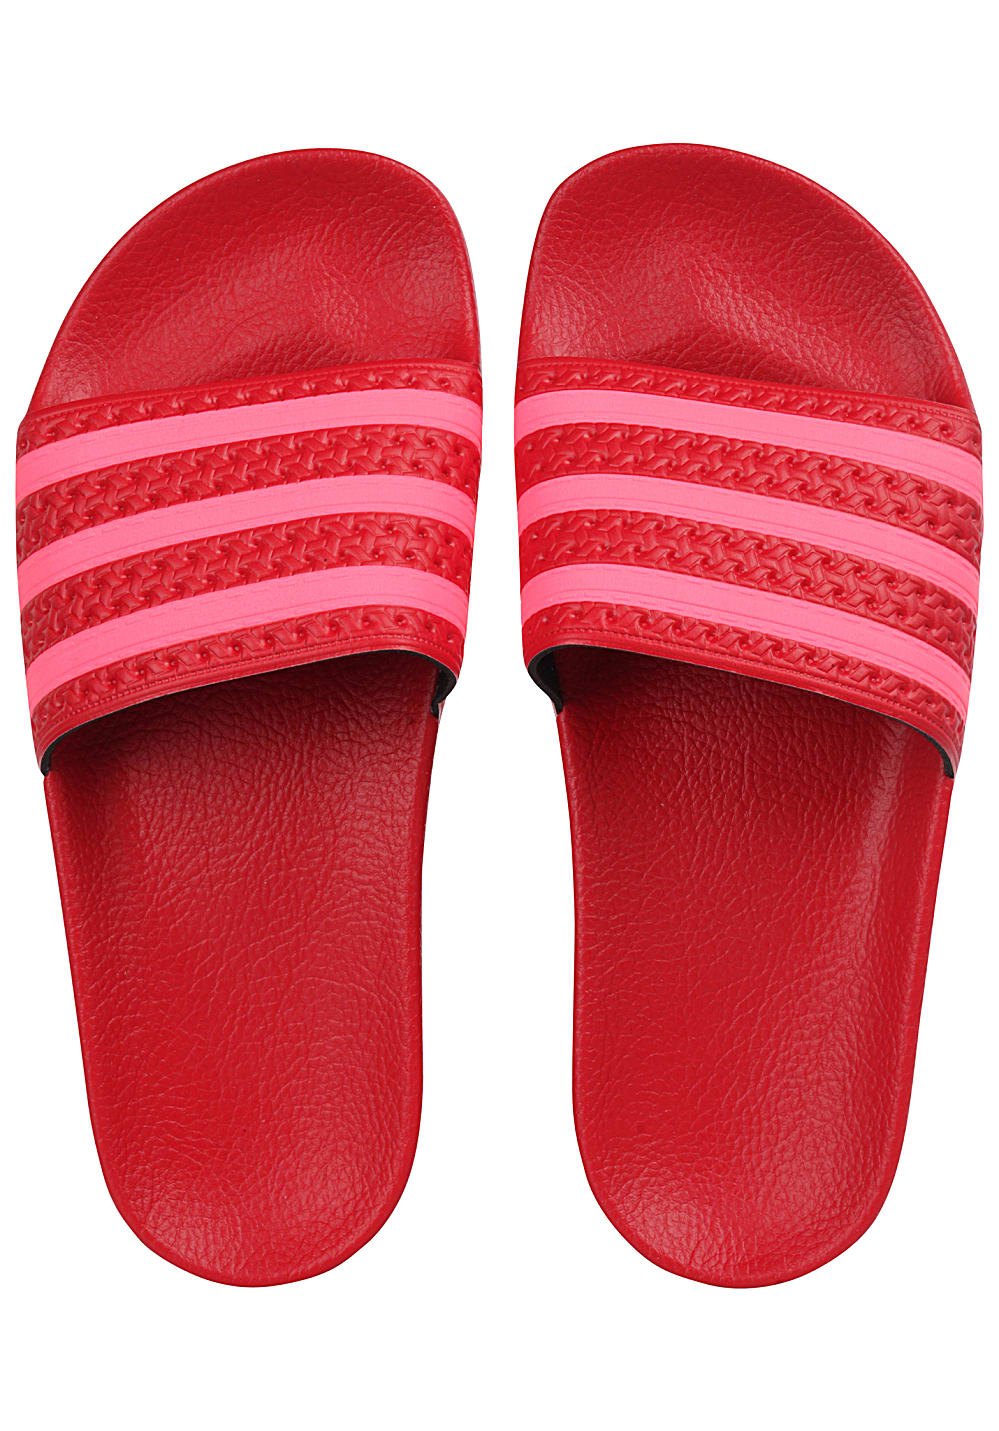 Women Originals Adilette Red Adidas For Sandals zMpqVUS